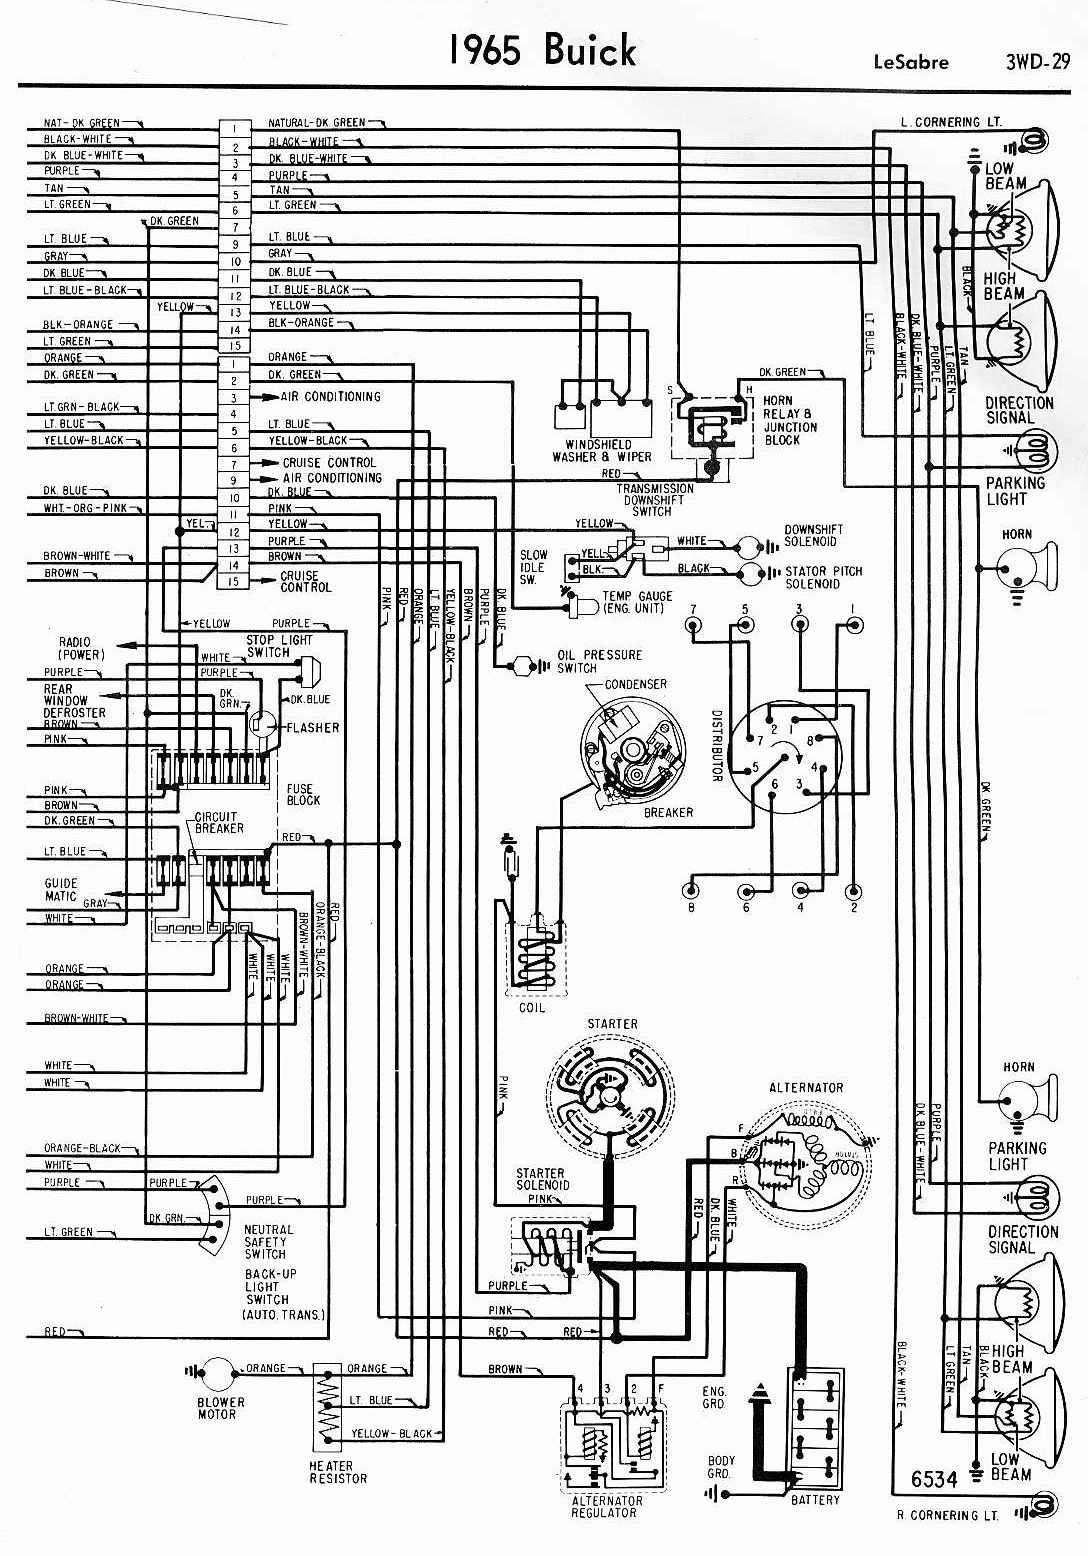 small resolution of 1967 buick electra wiring diagram schematic wiring diagram1967 buick electra wiring diagram best wiring library1967 buick